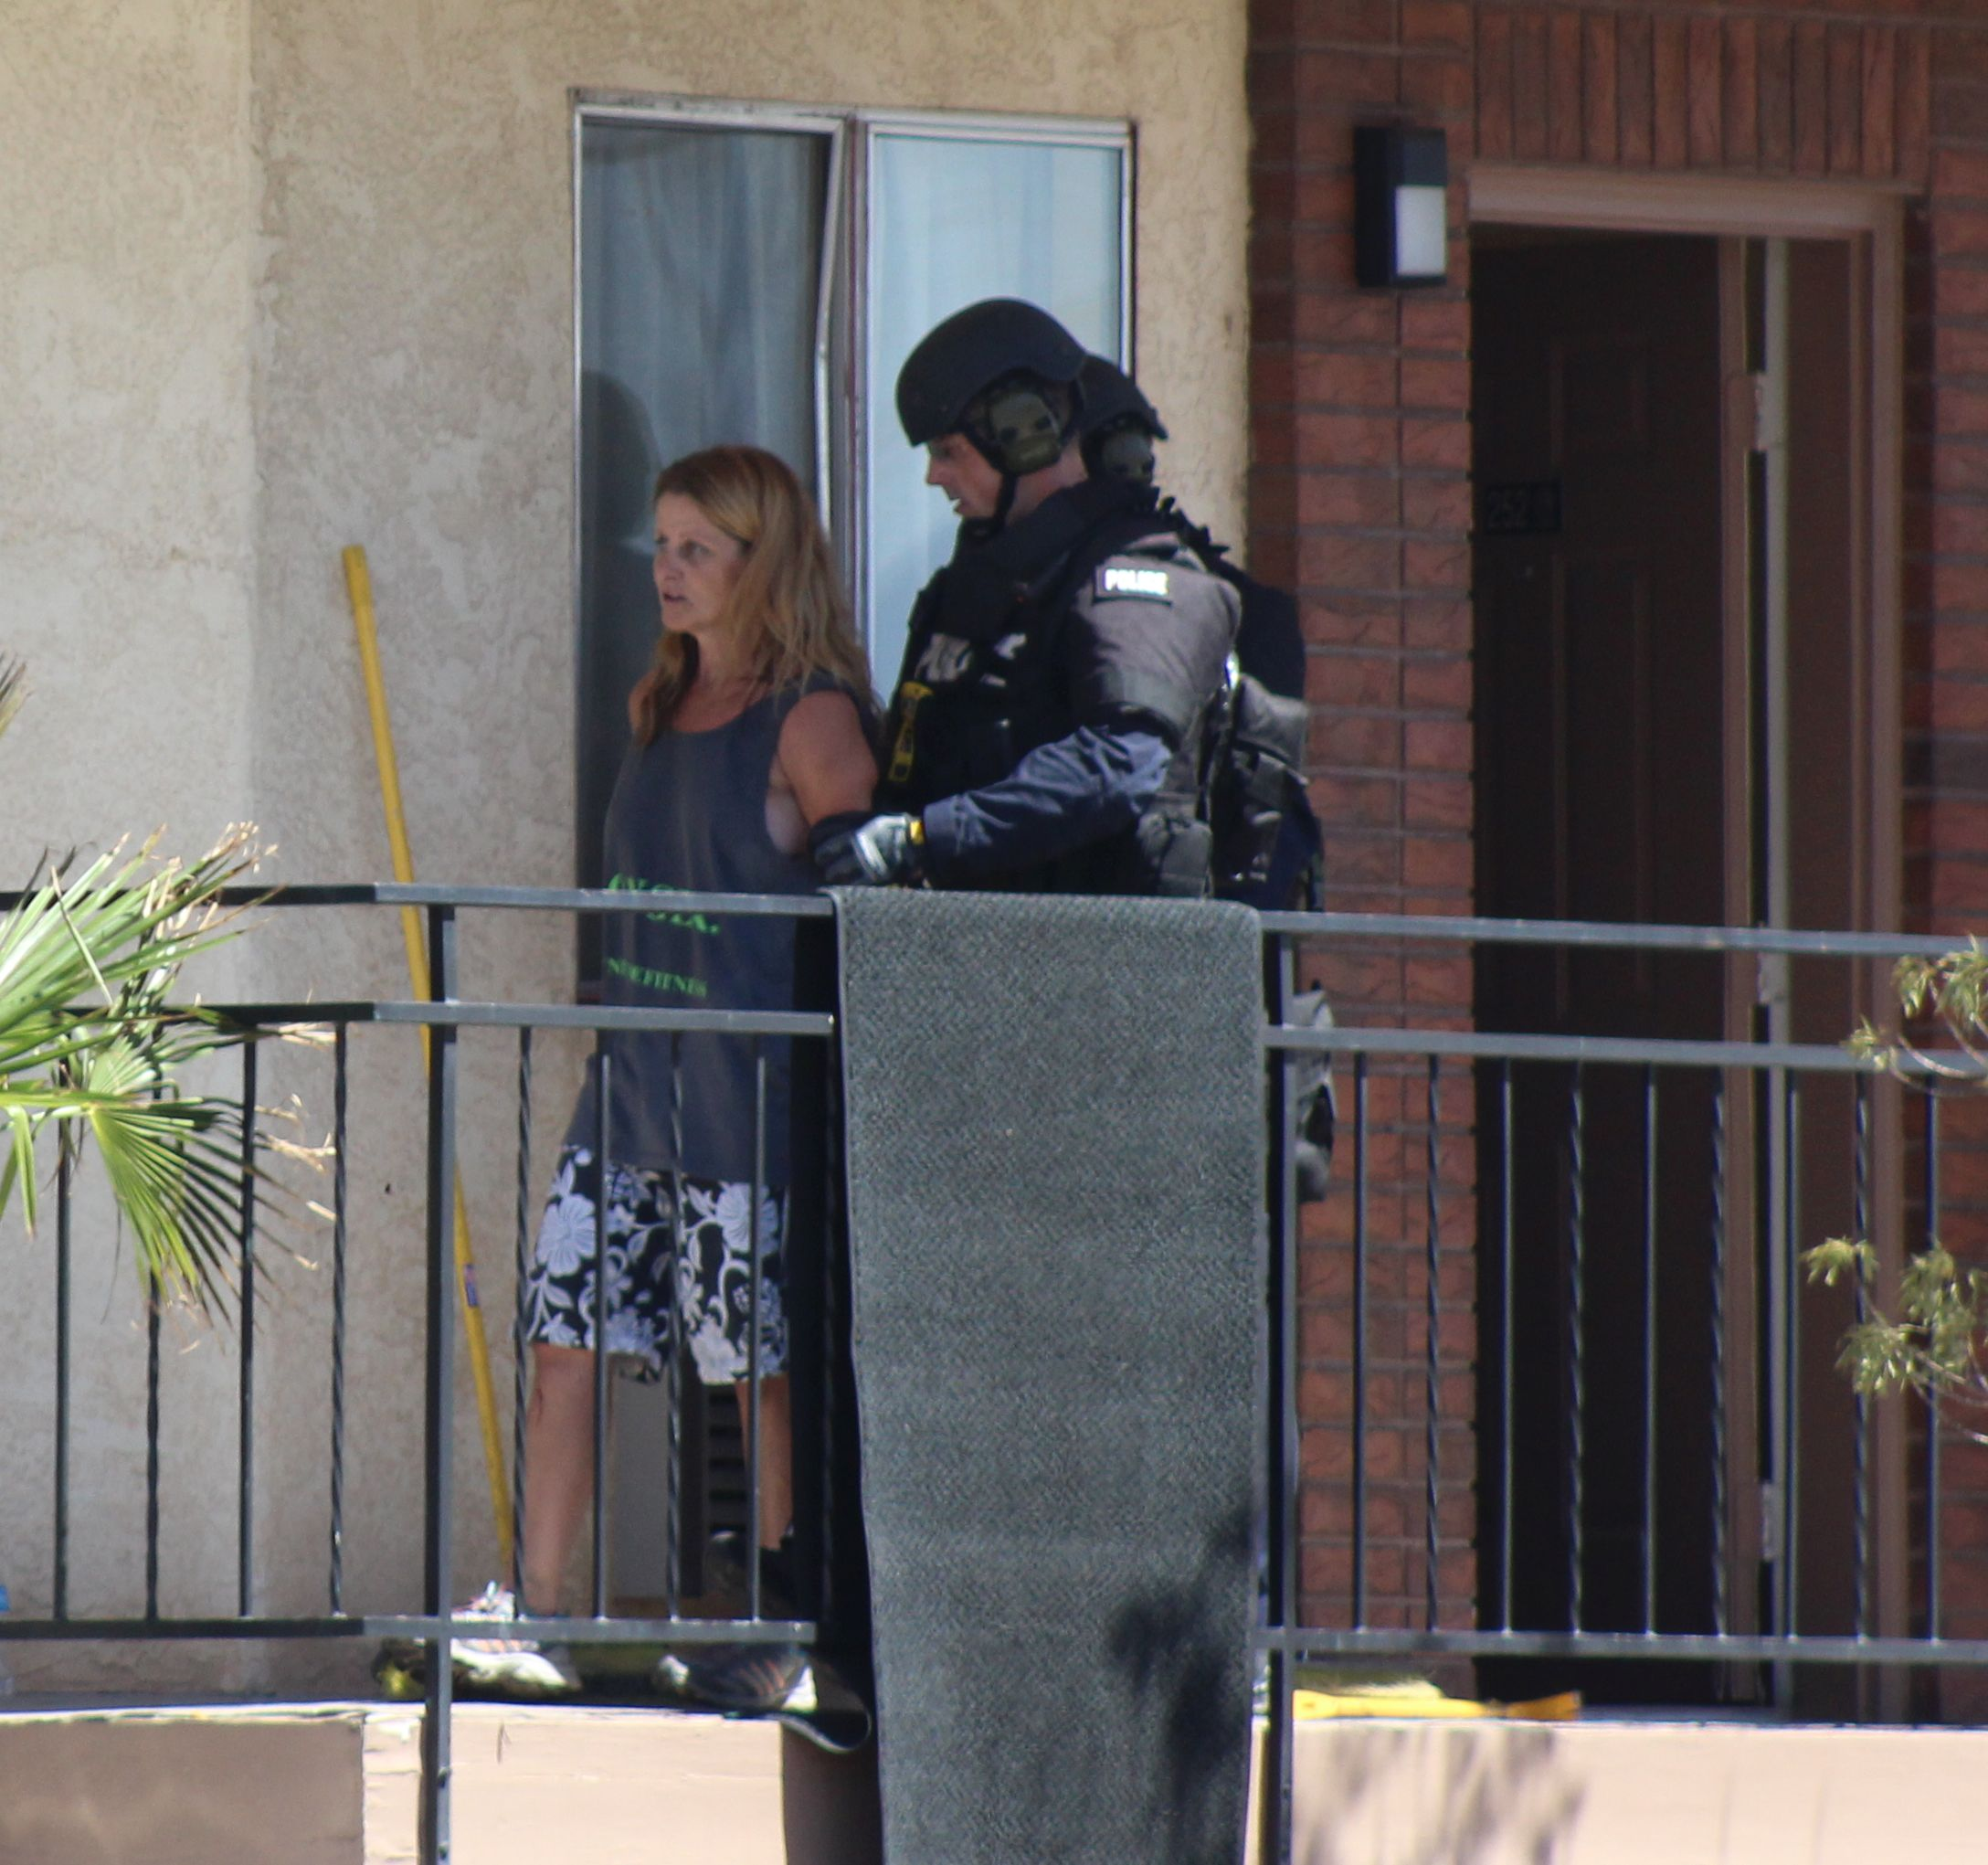 A SWAT team member escorts Melissa Rowan, 46, from her room at the Sun Time Inn where she had been destroying the property. St. George, Utah, July 17, 2016 | Photo by Ric Wayman, St. George News